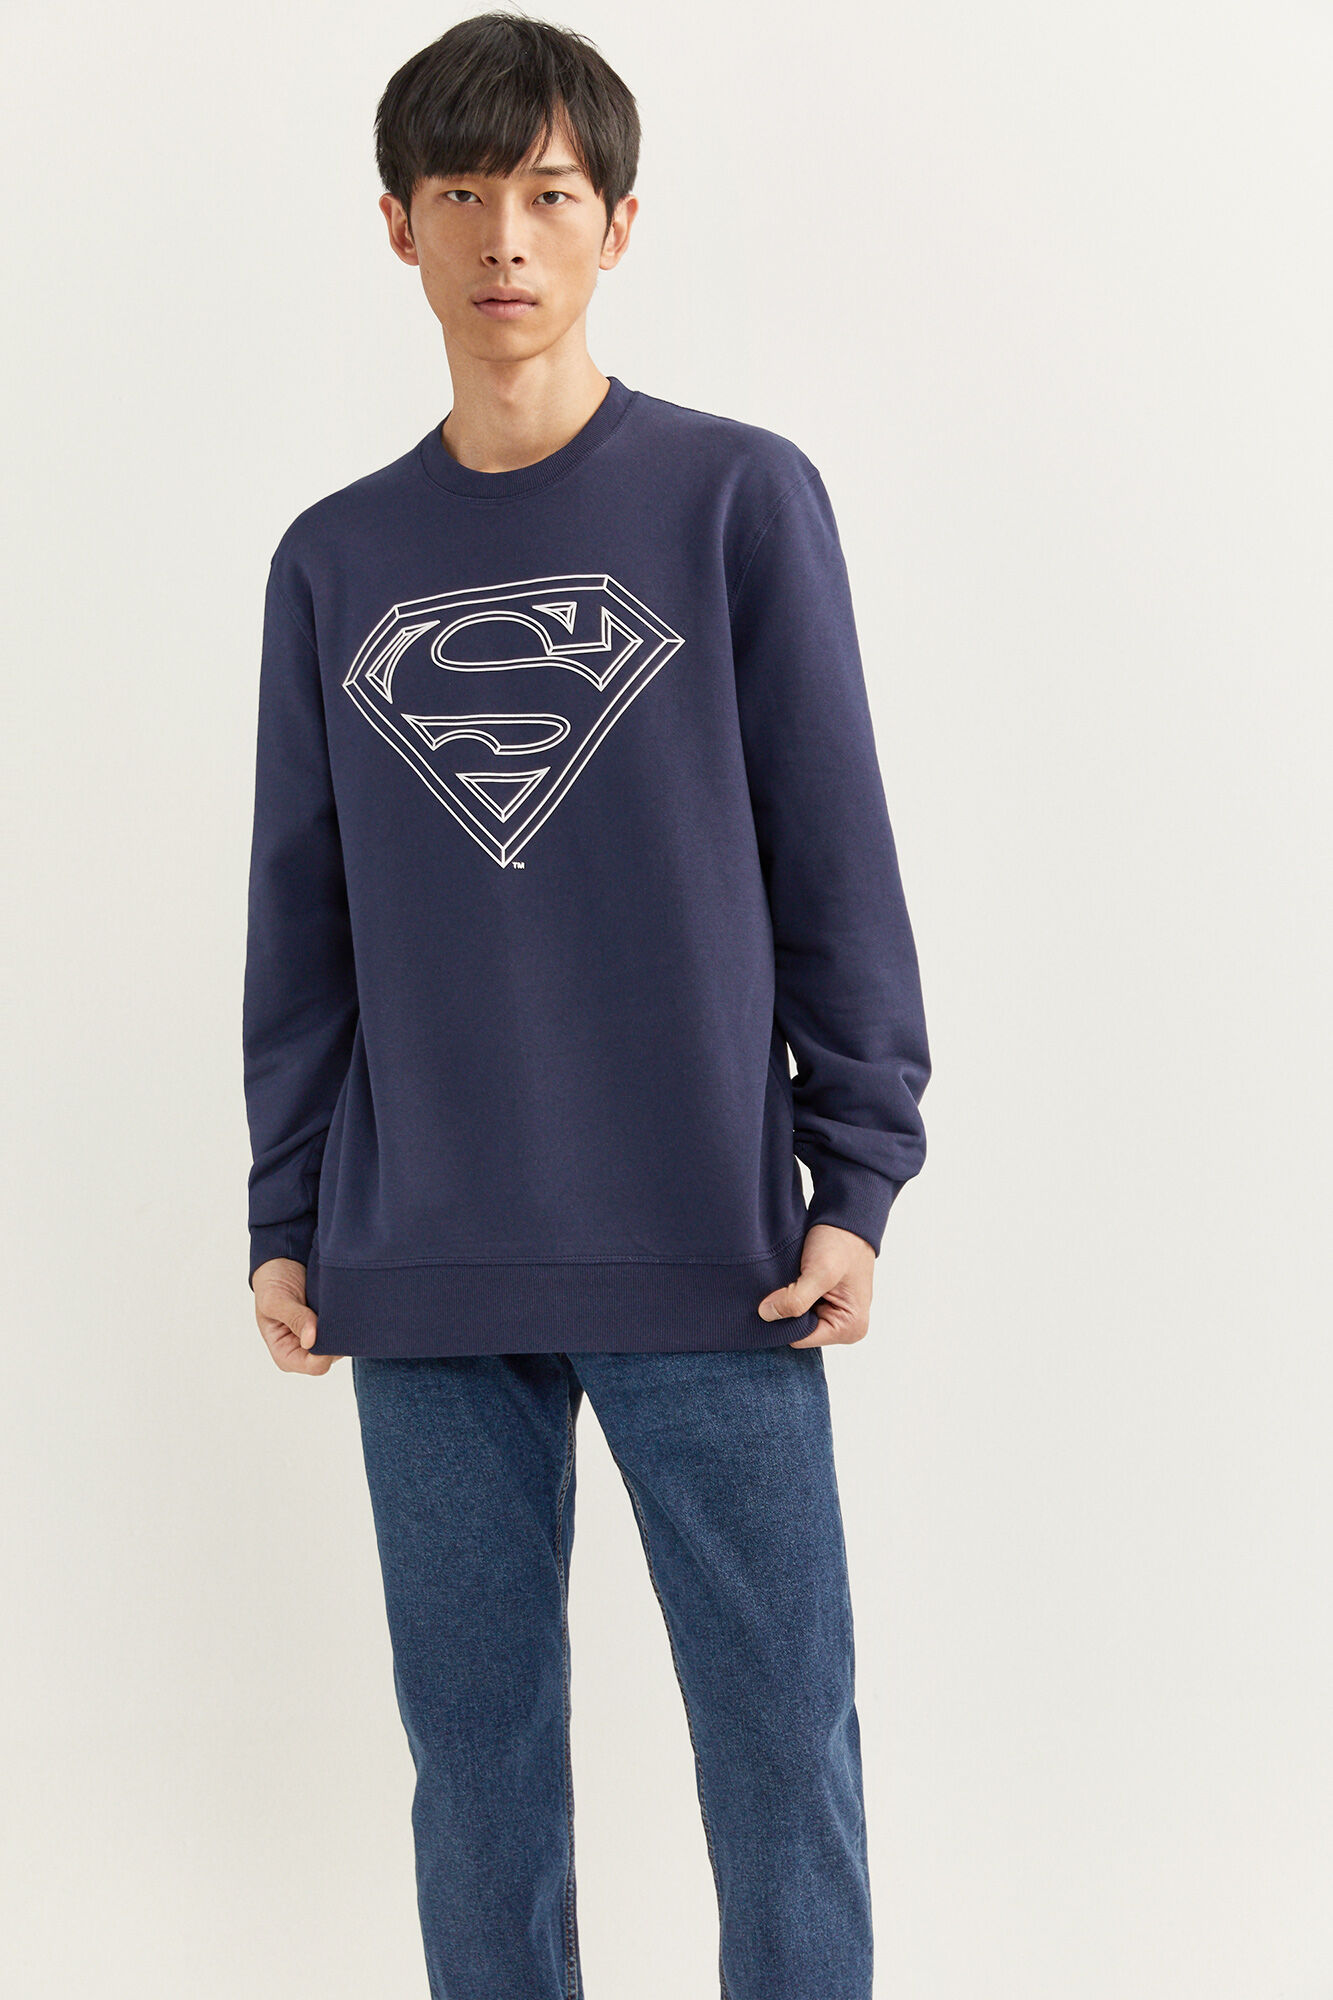 Sudadera regular fit con cuello caja y estampado de Superman.